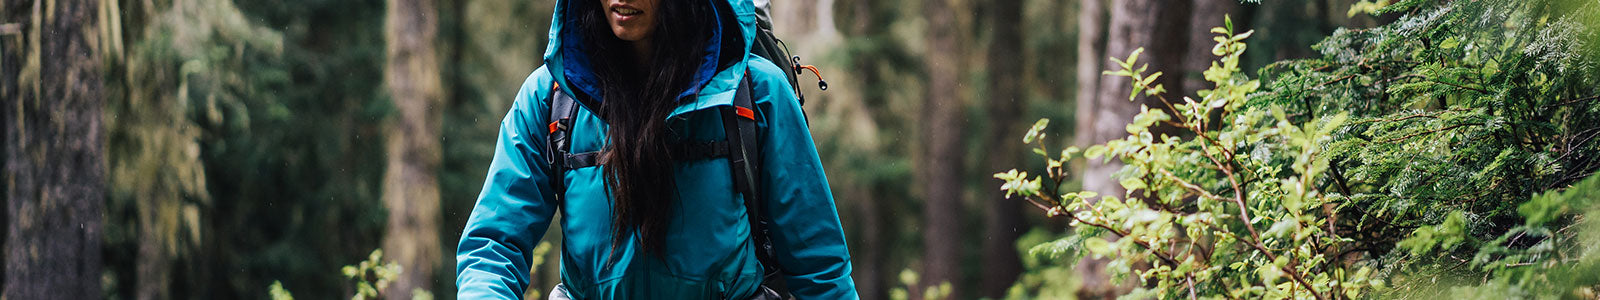 Women's Marmot Clothing